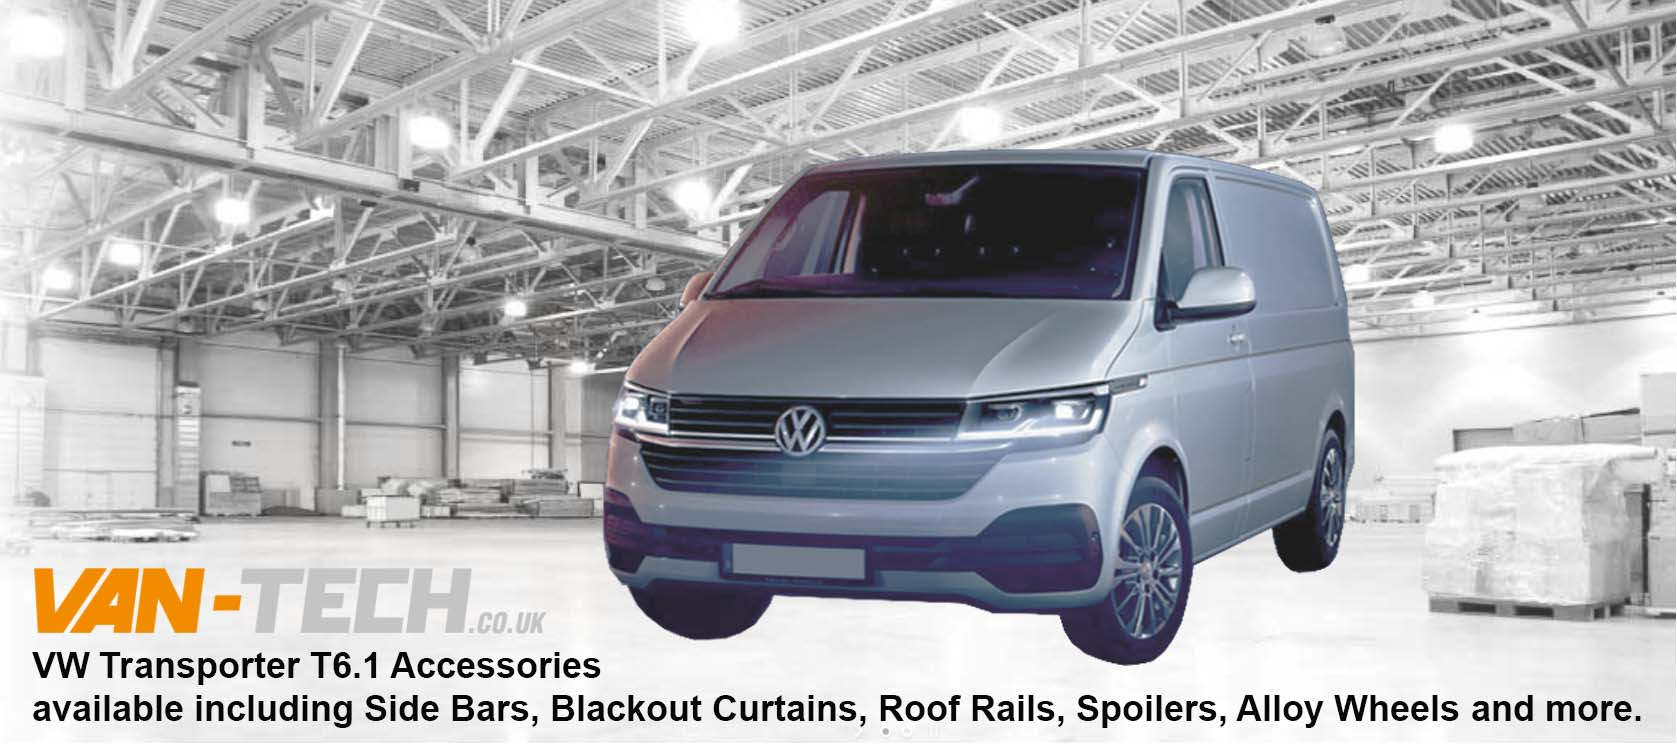 Vw Transporter T6 1 Accessories And Parts Available At Van Tech Co Uk